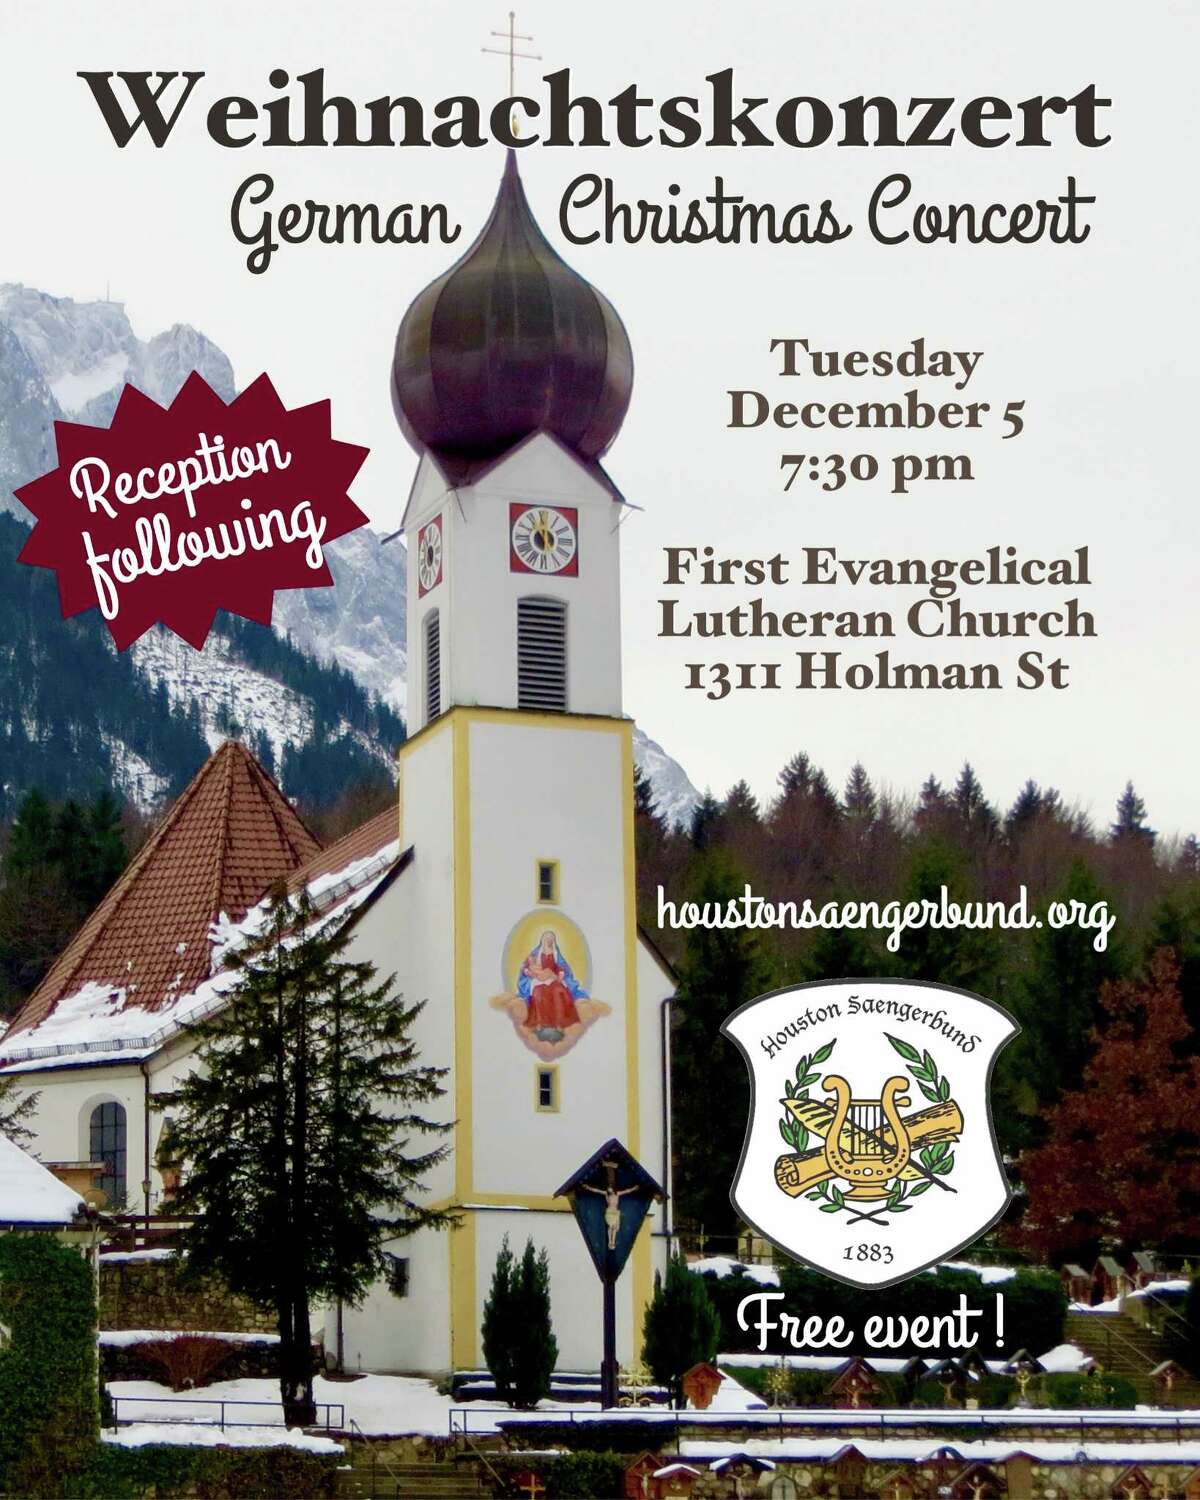 Atraditional German Christmas celebration is scheduled for 7:30 p.m. Tuesday, Dec. 5, at First Evangelical Lutheran Church, 1311 Holman Street in Midtown.